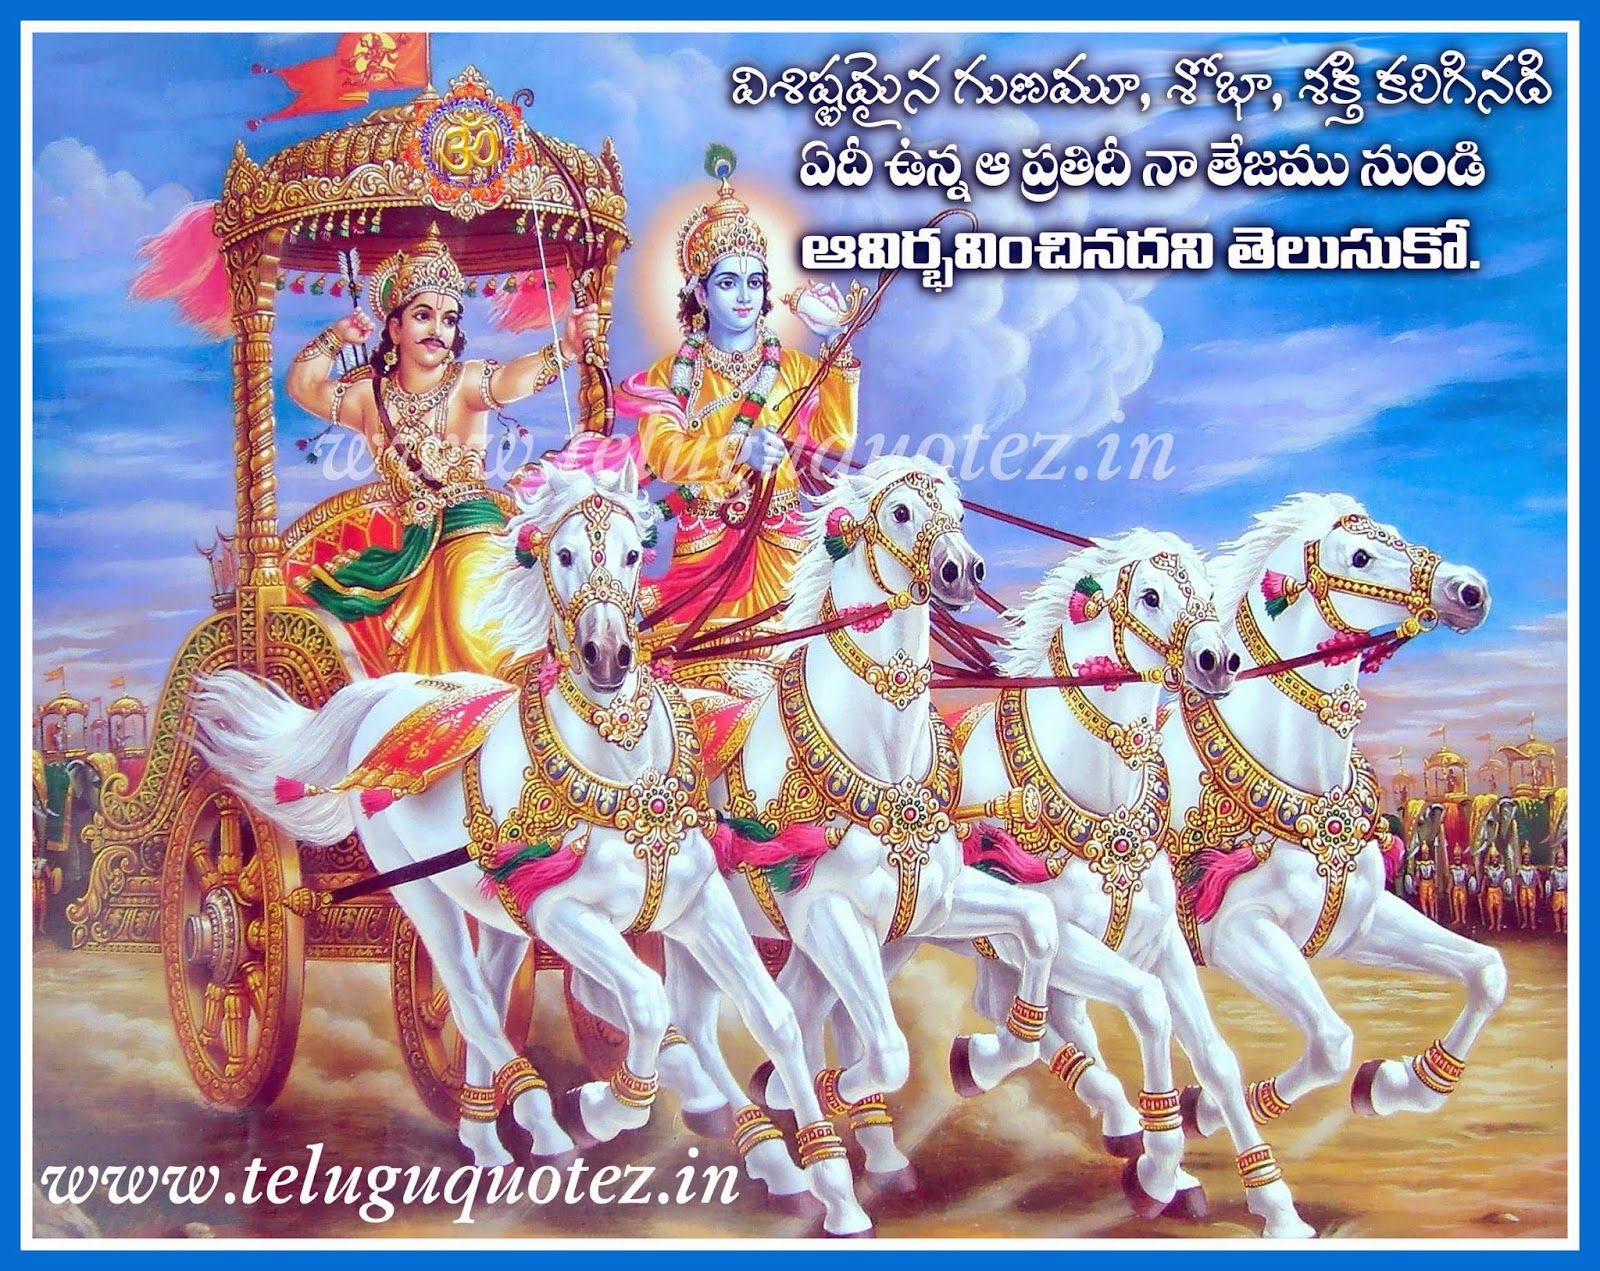 Bhagavad Gita Famous Telugu Quotes And Pictures Ok Krishna